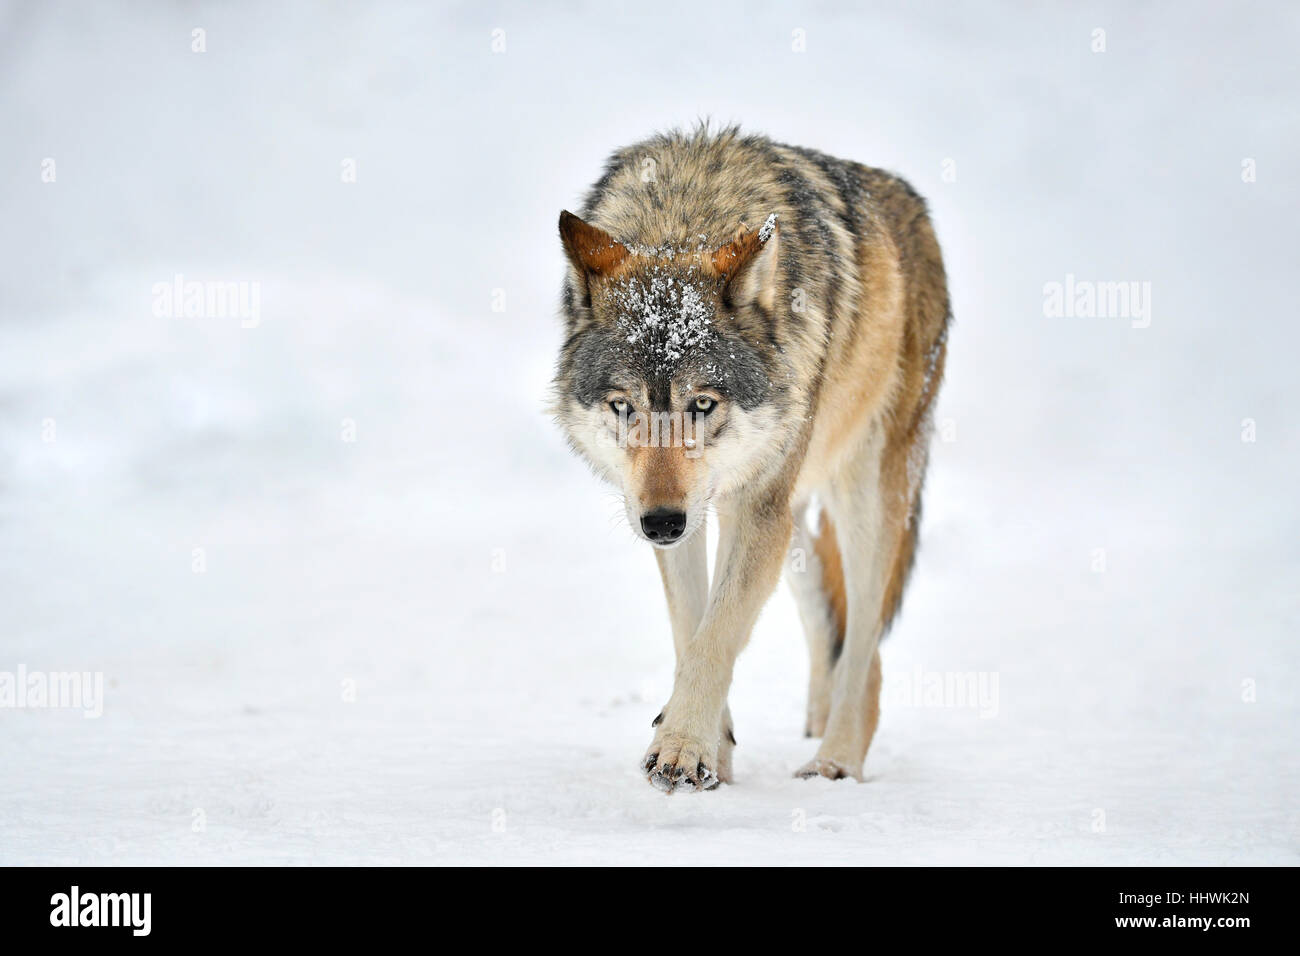 Eastern wolf (Canis lupus lycaon) in snow, captive, Baden-Württemberg, Germany - Stock Image